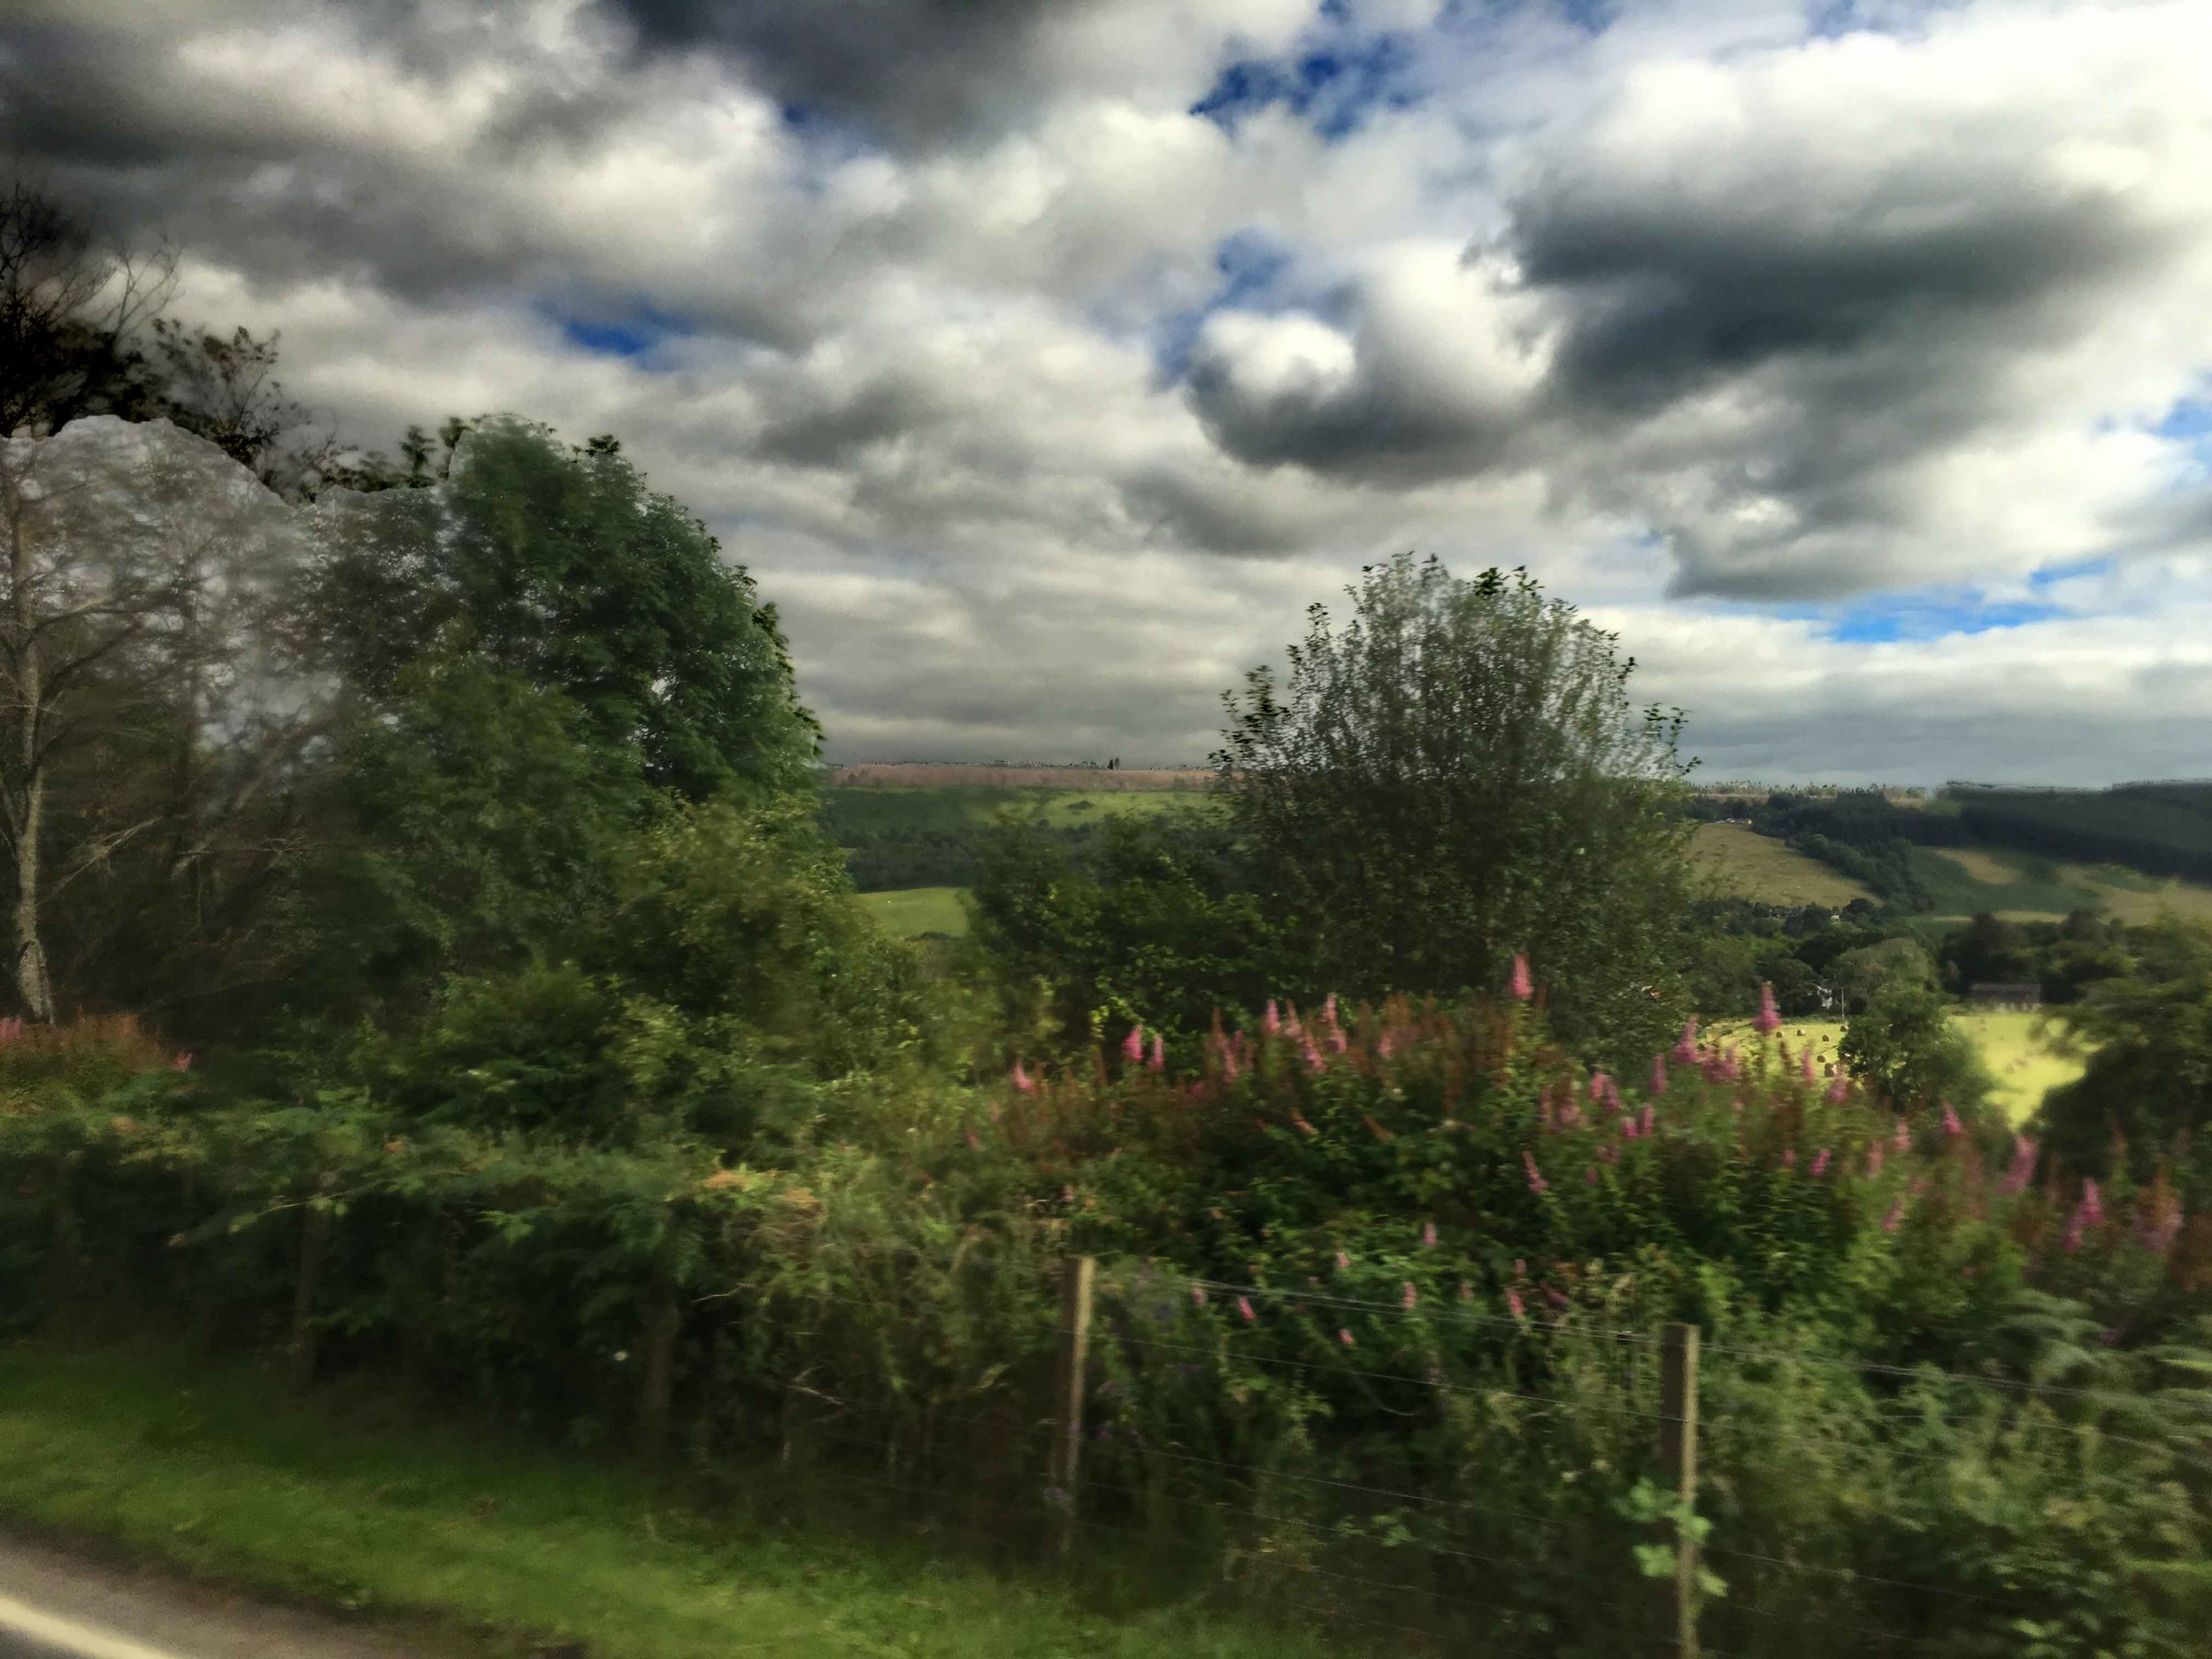 From Inverness to Loch Ness, bus ride, Scottish Highlands, Scotland. Image©sourcingstyle.com